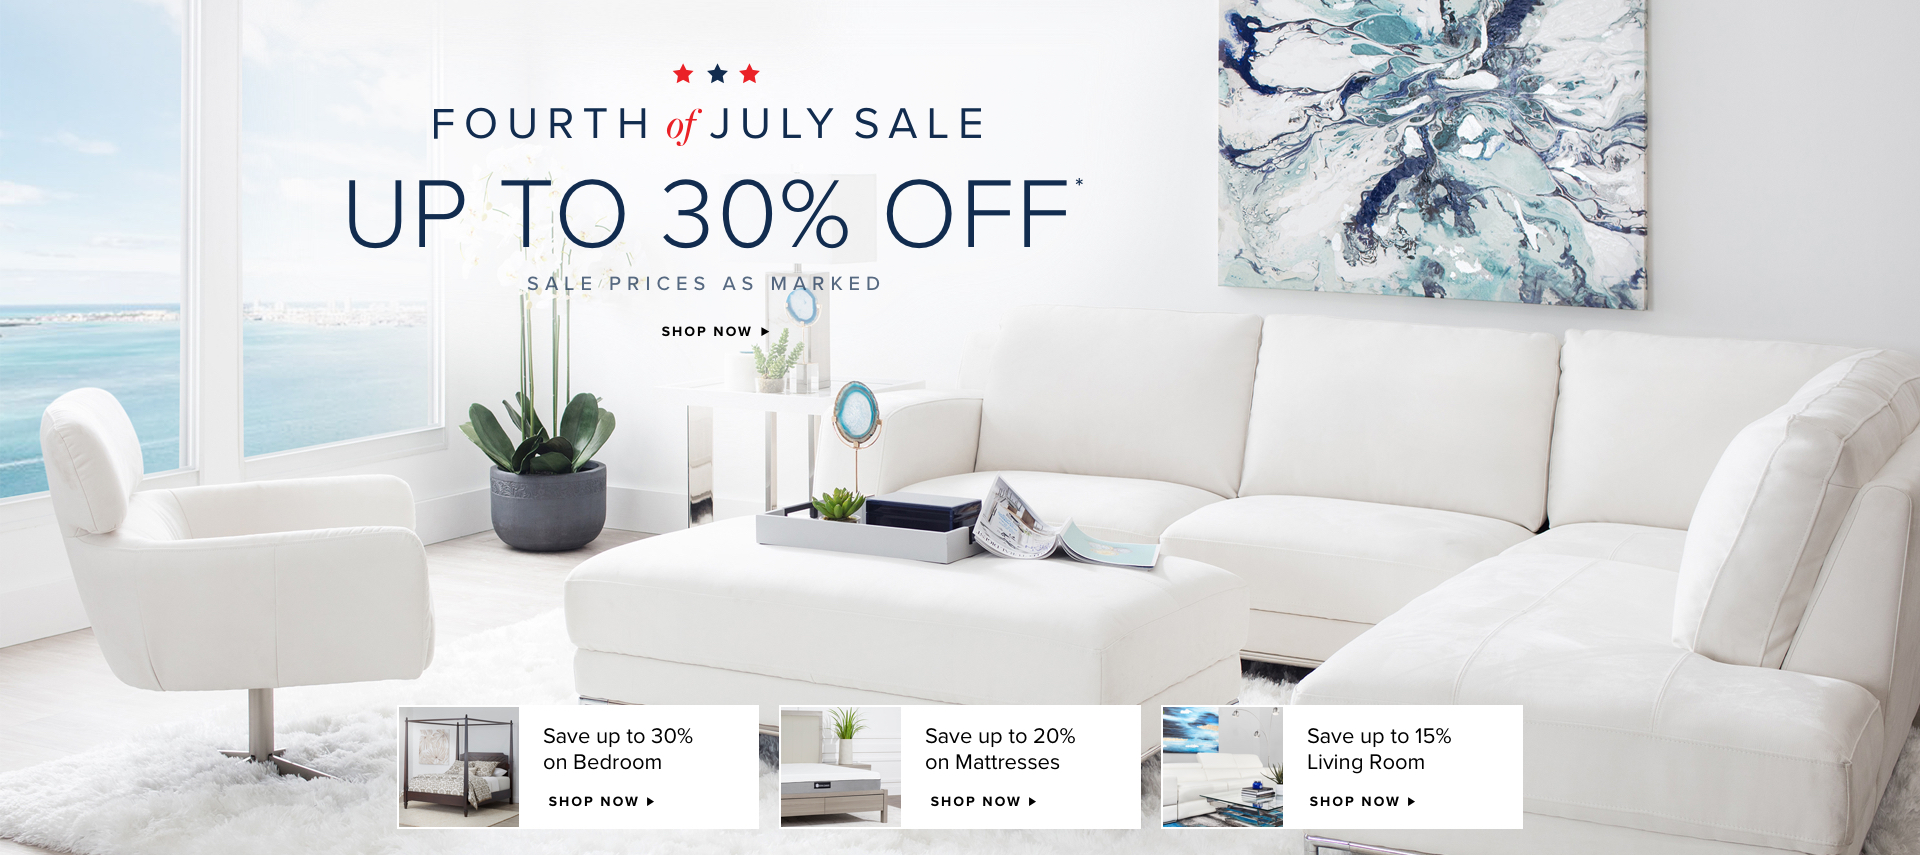 Fourth of July Sale up to 30% OFF* Sale Price as Marked. Shop Now.